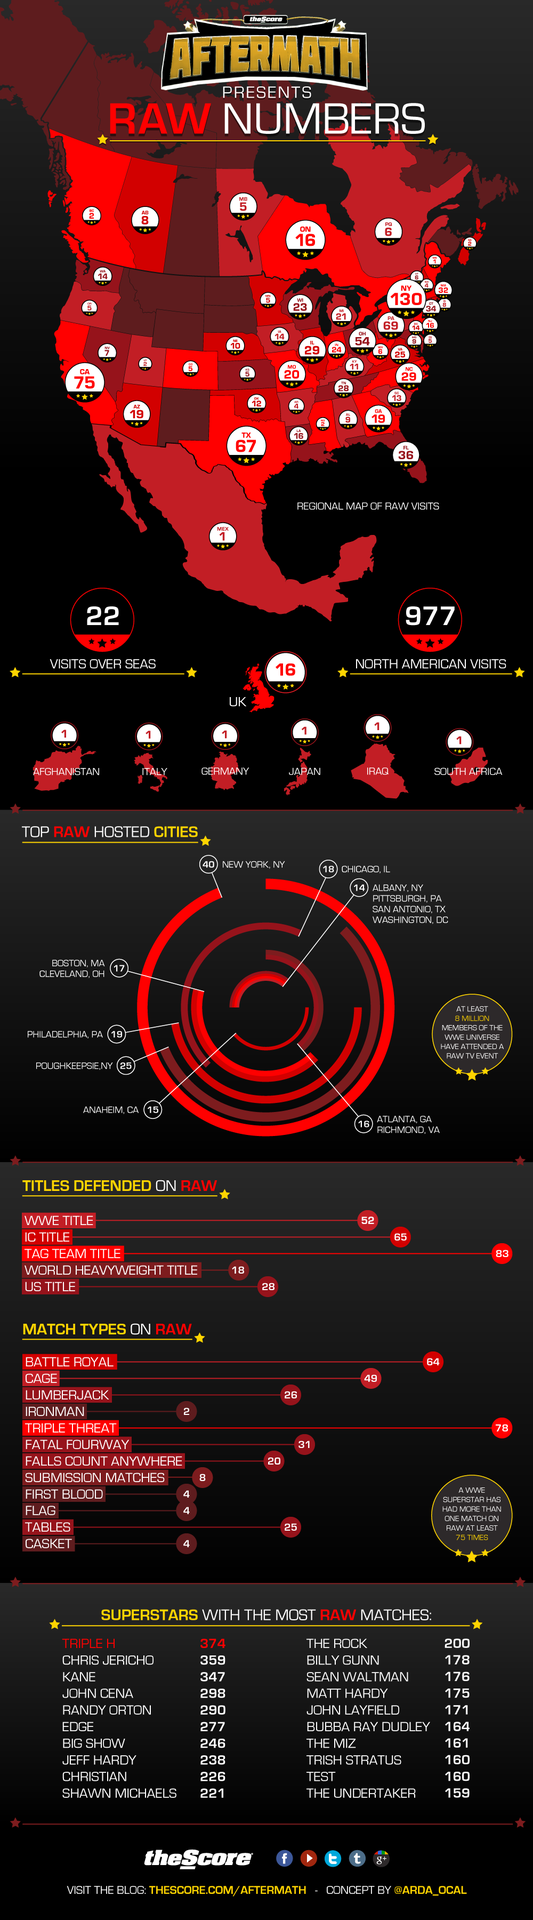 AFTERMATH presents RAW Numbers!!! [INFOGRAPHIC]